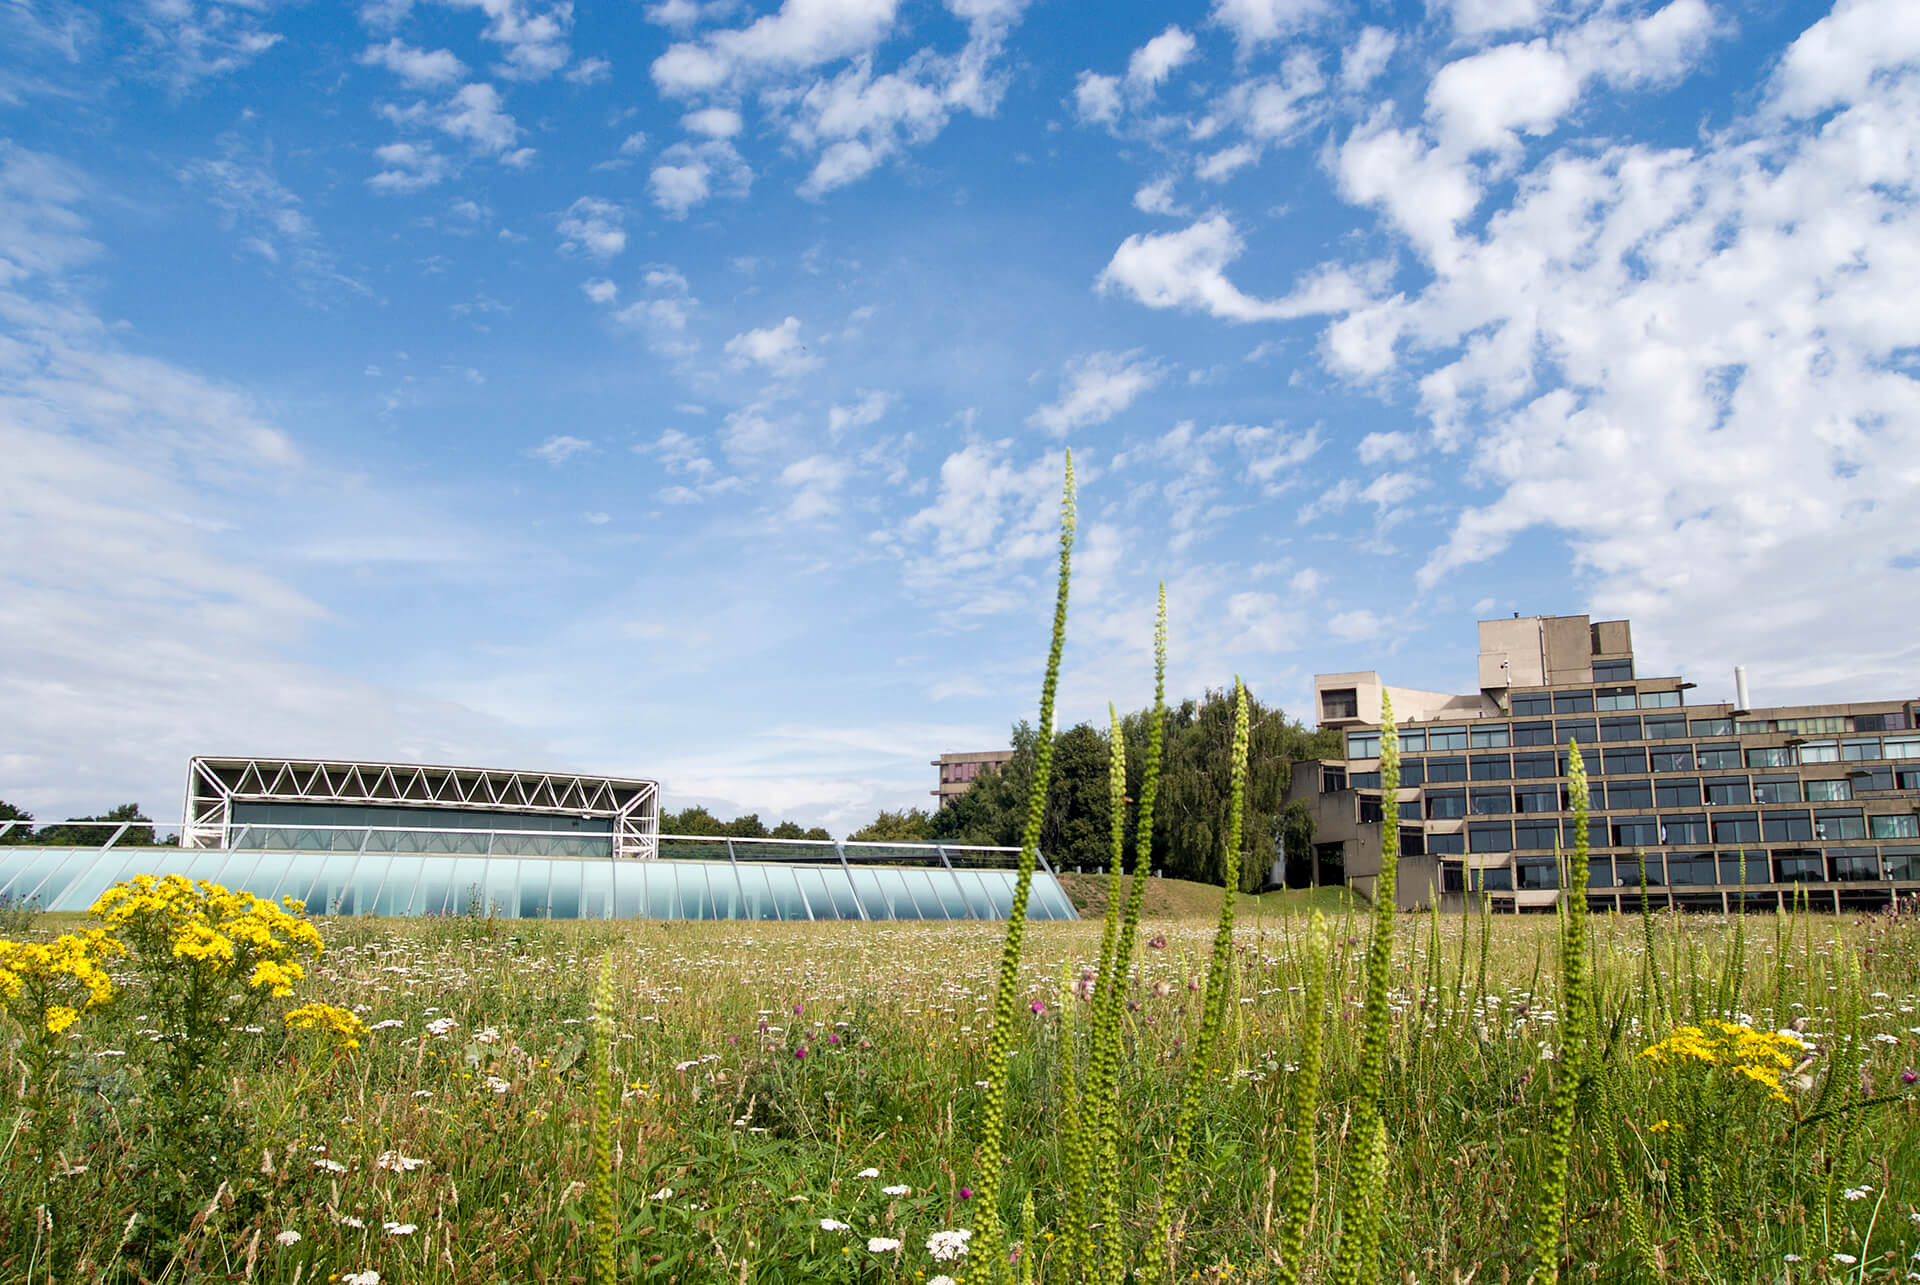 View of UEA campus with Ziggurats and Sainsbury Centre for Visual Arts